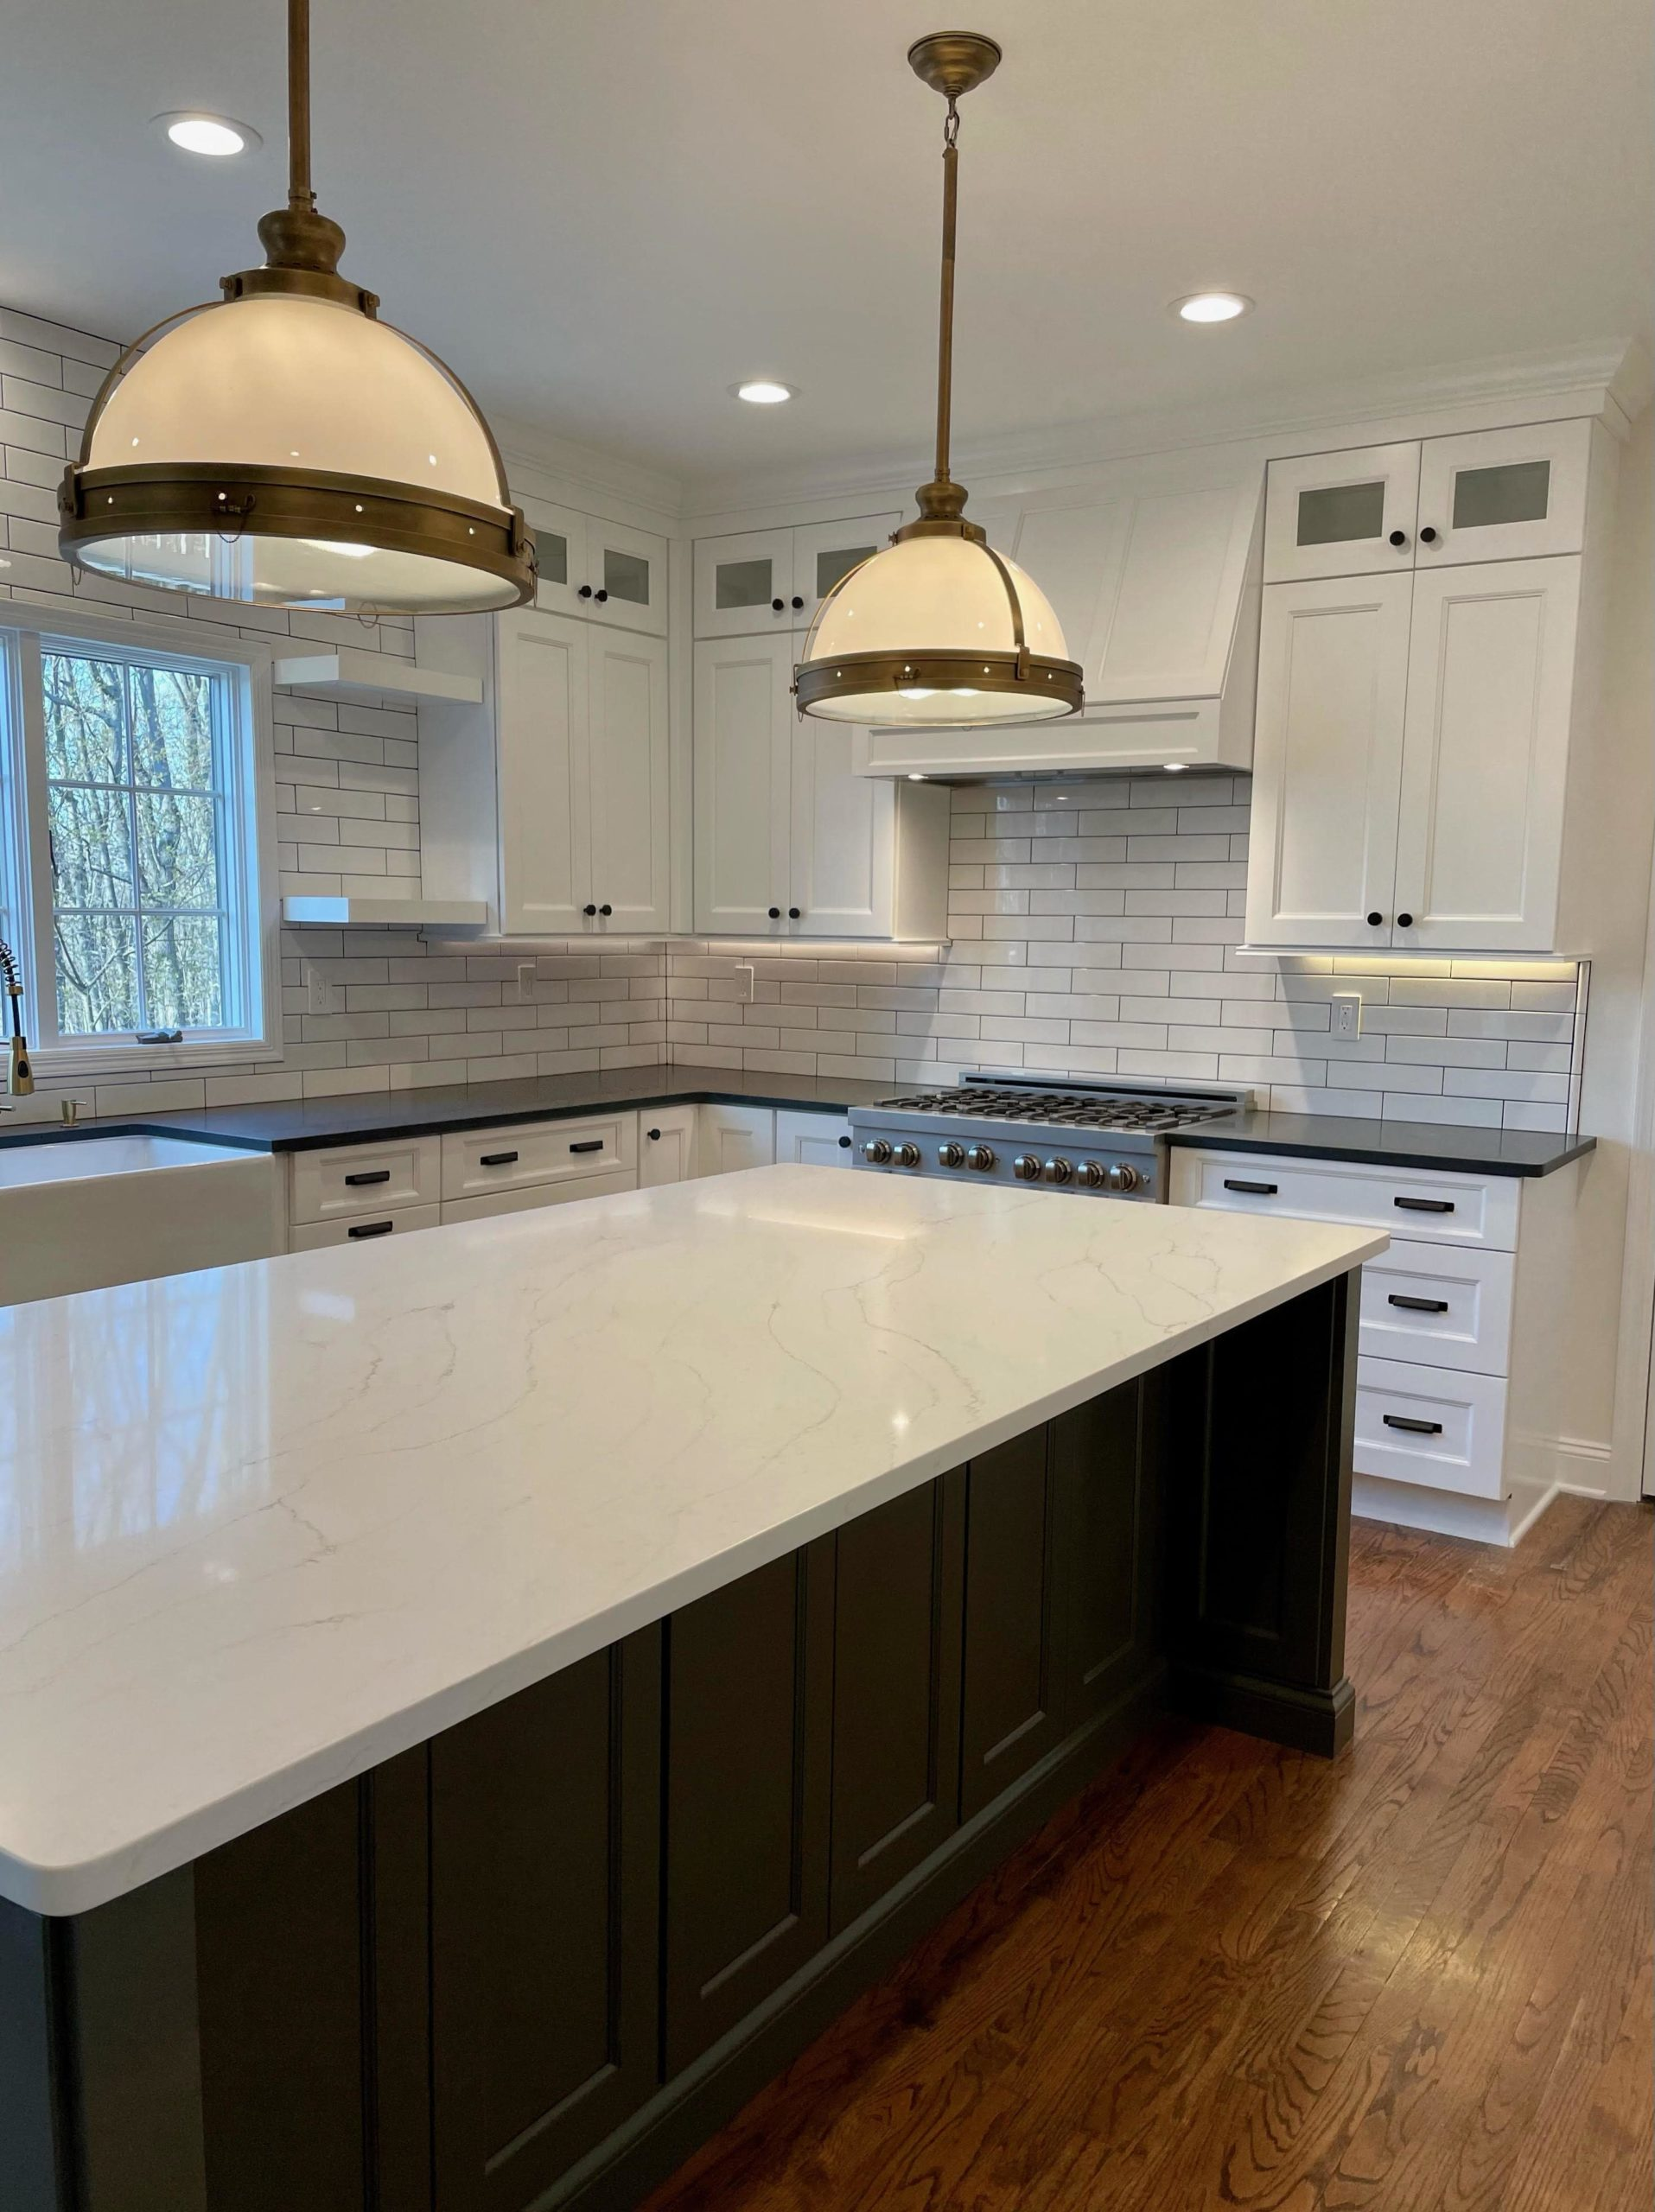 Farmhouse Transitional Kitchen Remodel Project in Long Valley, NJ